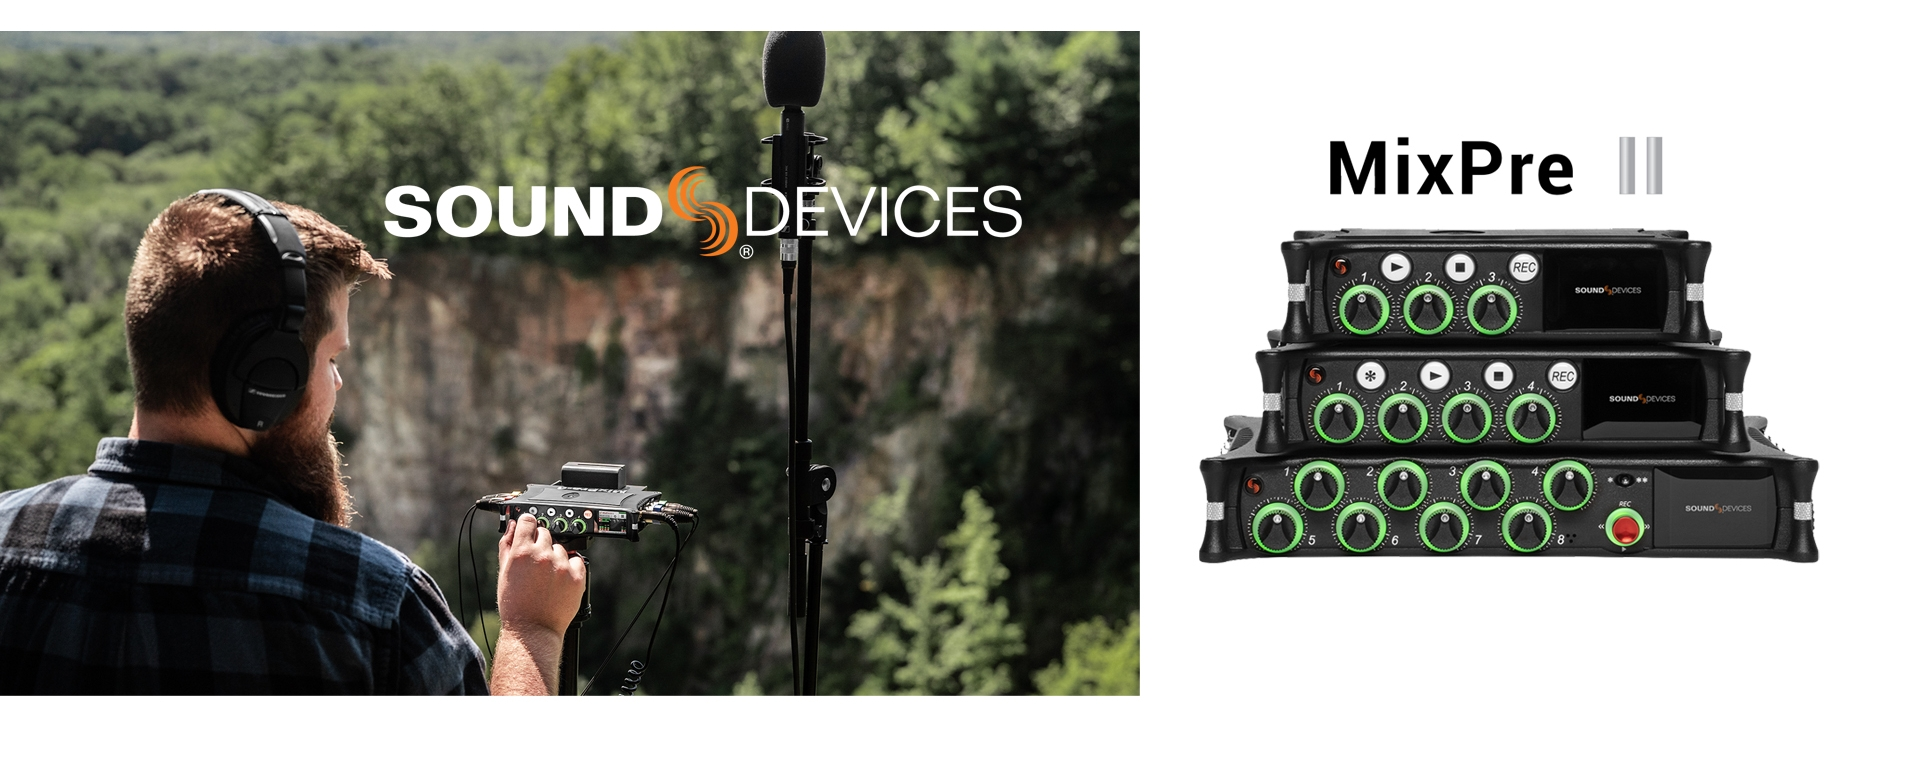 Sound Devices MixPre II